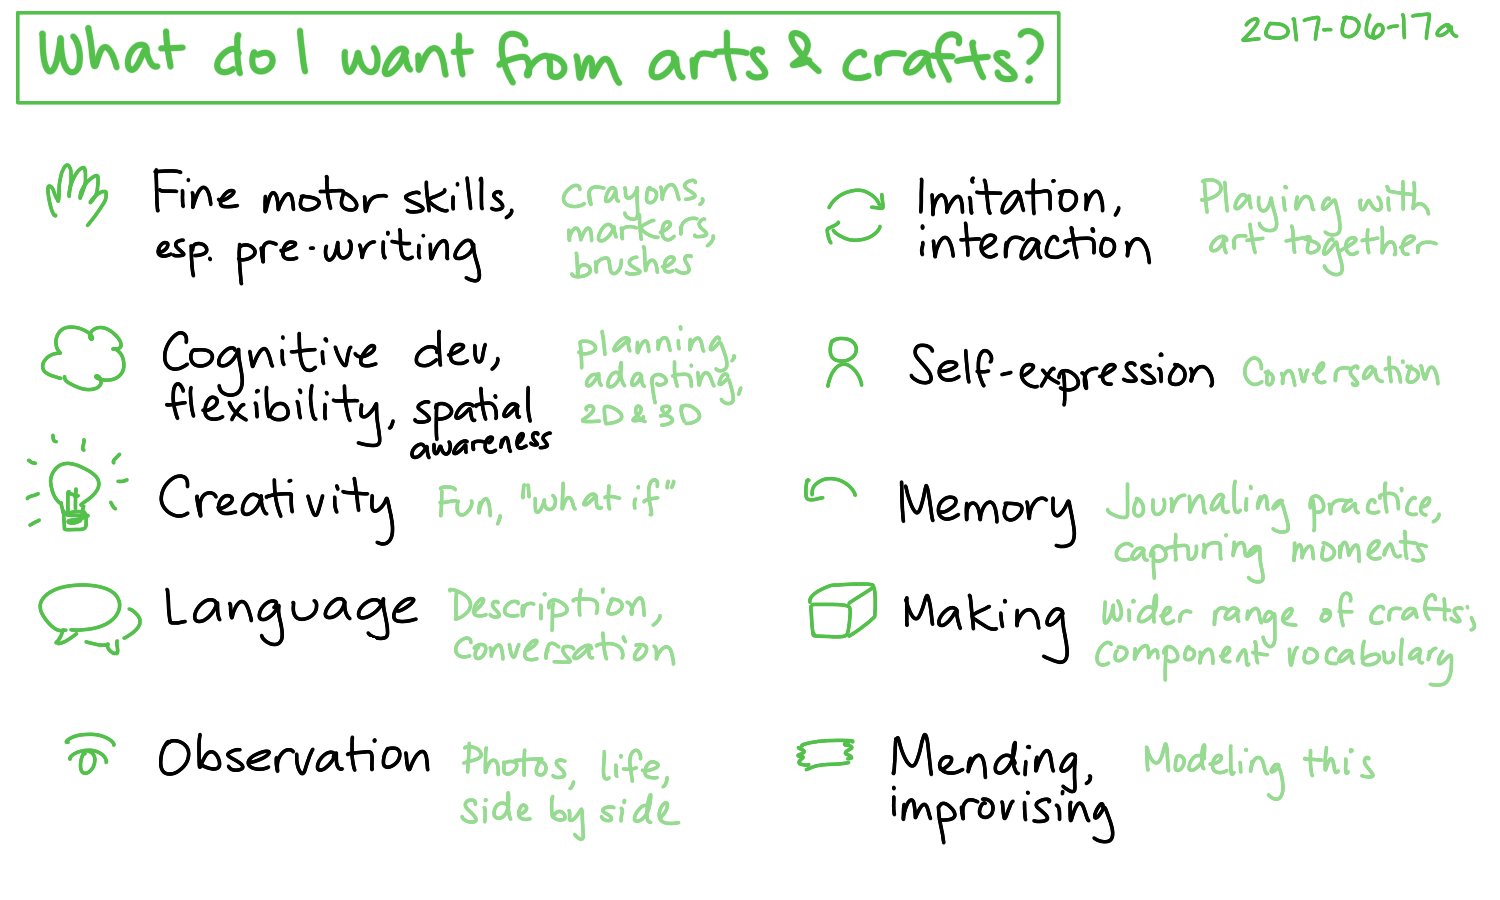 2017-06-17a What do I want from arts and crafts #parenting #ece.png